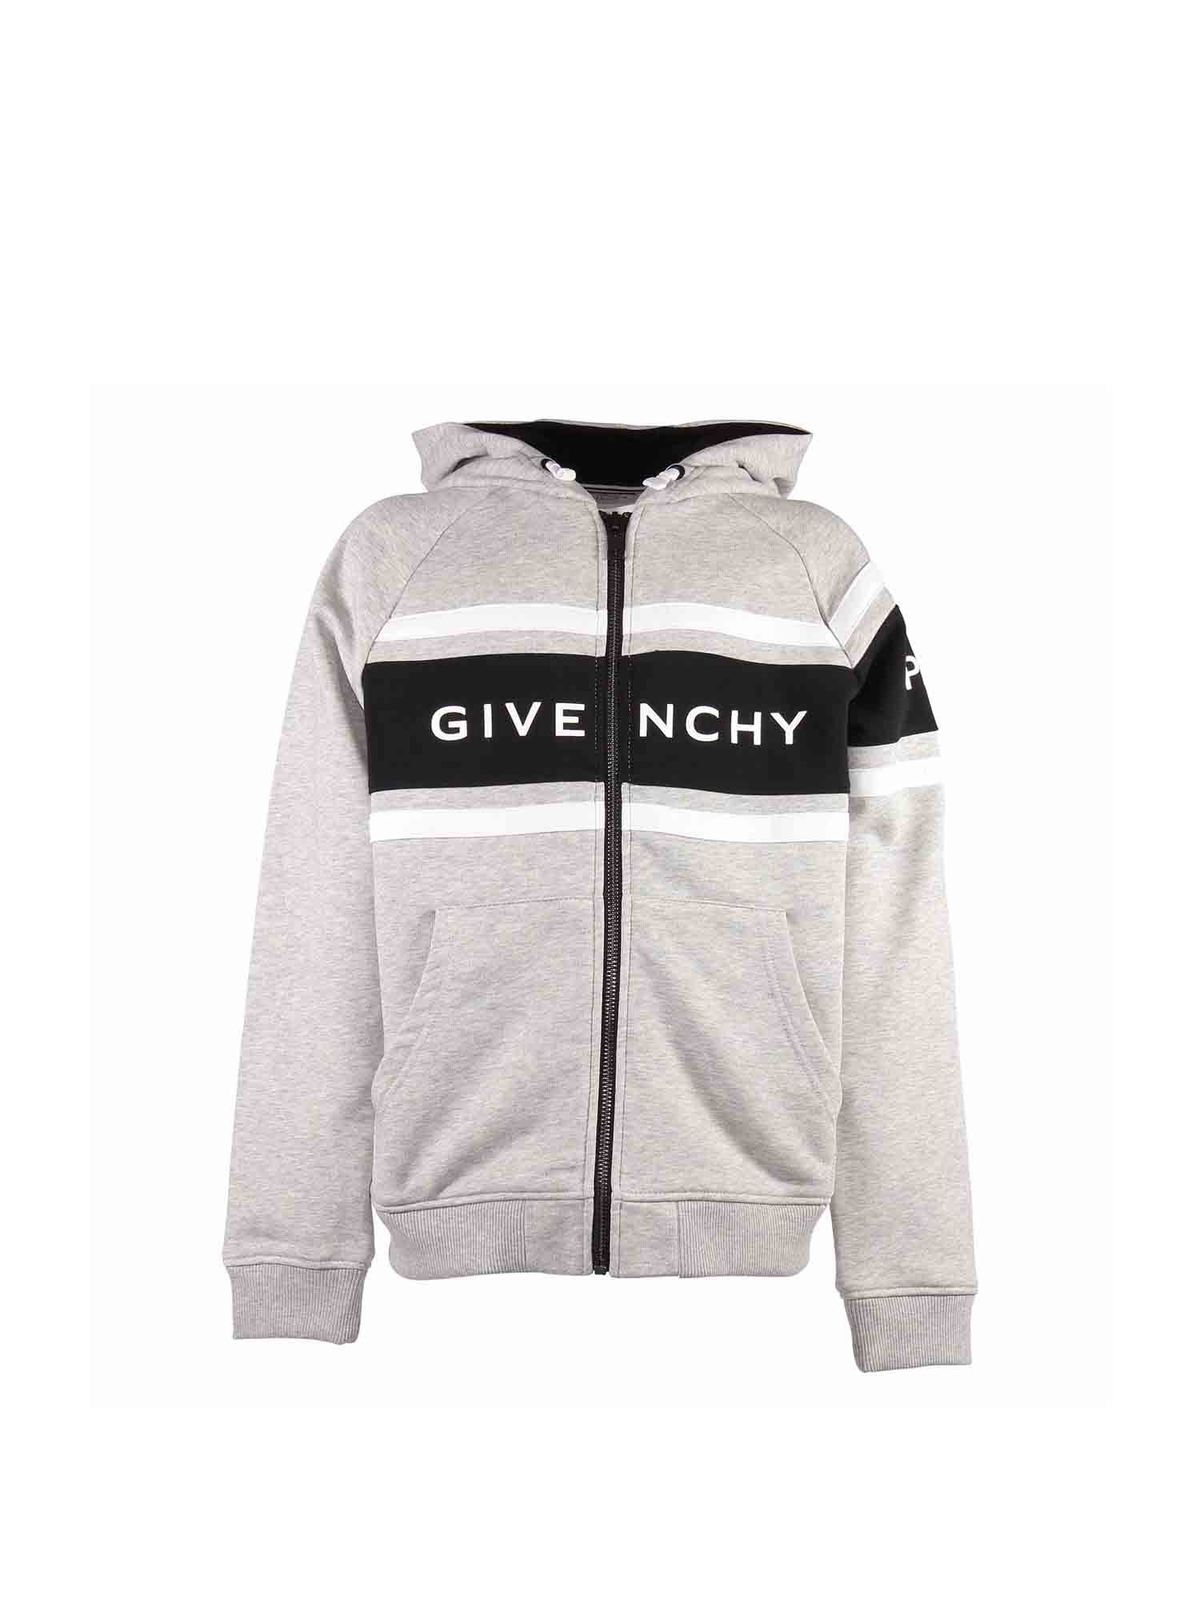 Givenchy Kids' Zipped Hooded Sweatshirt In Melange Grey